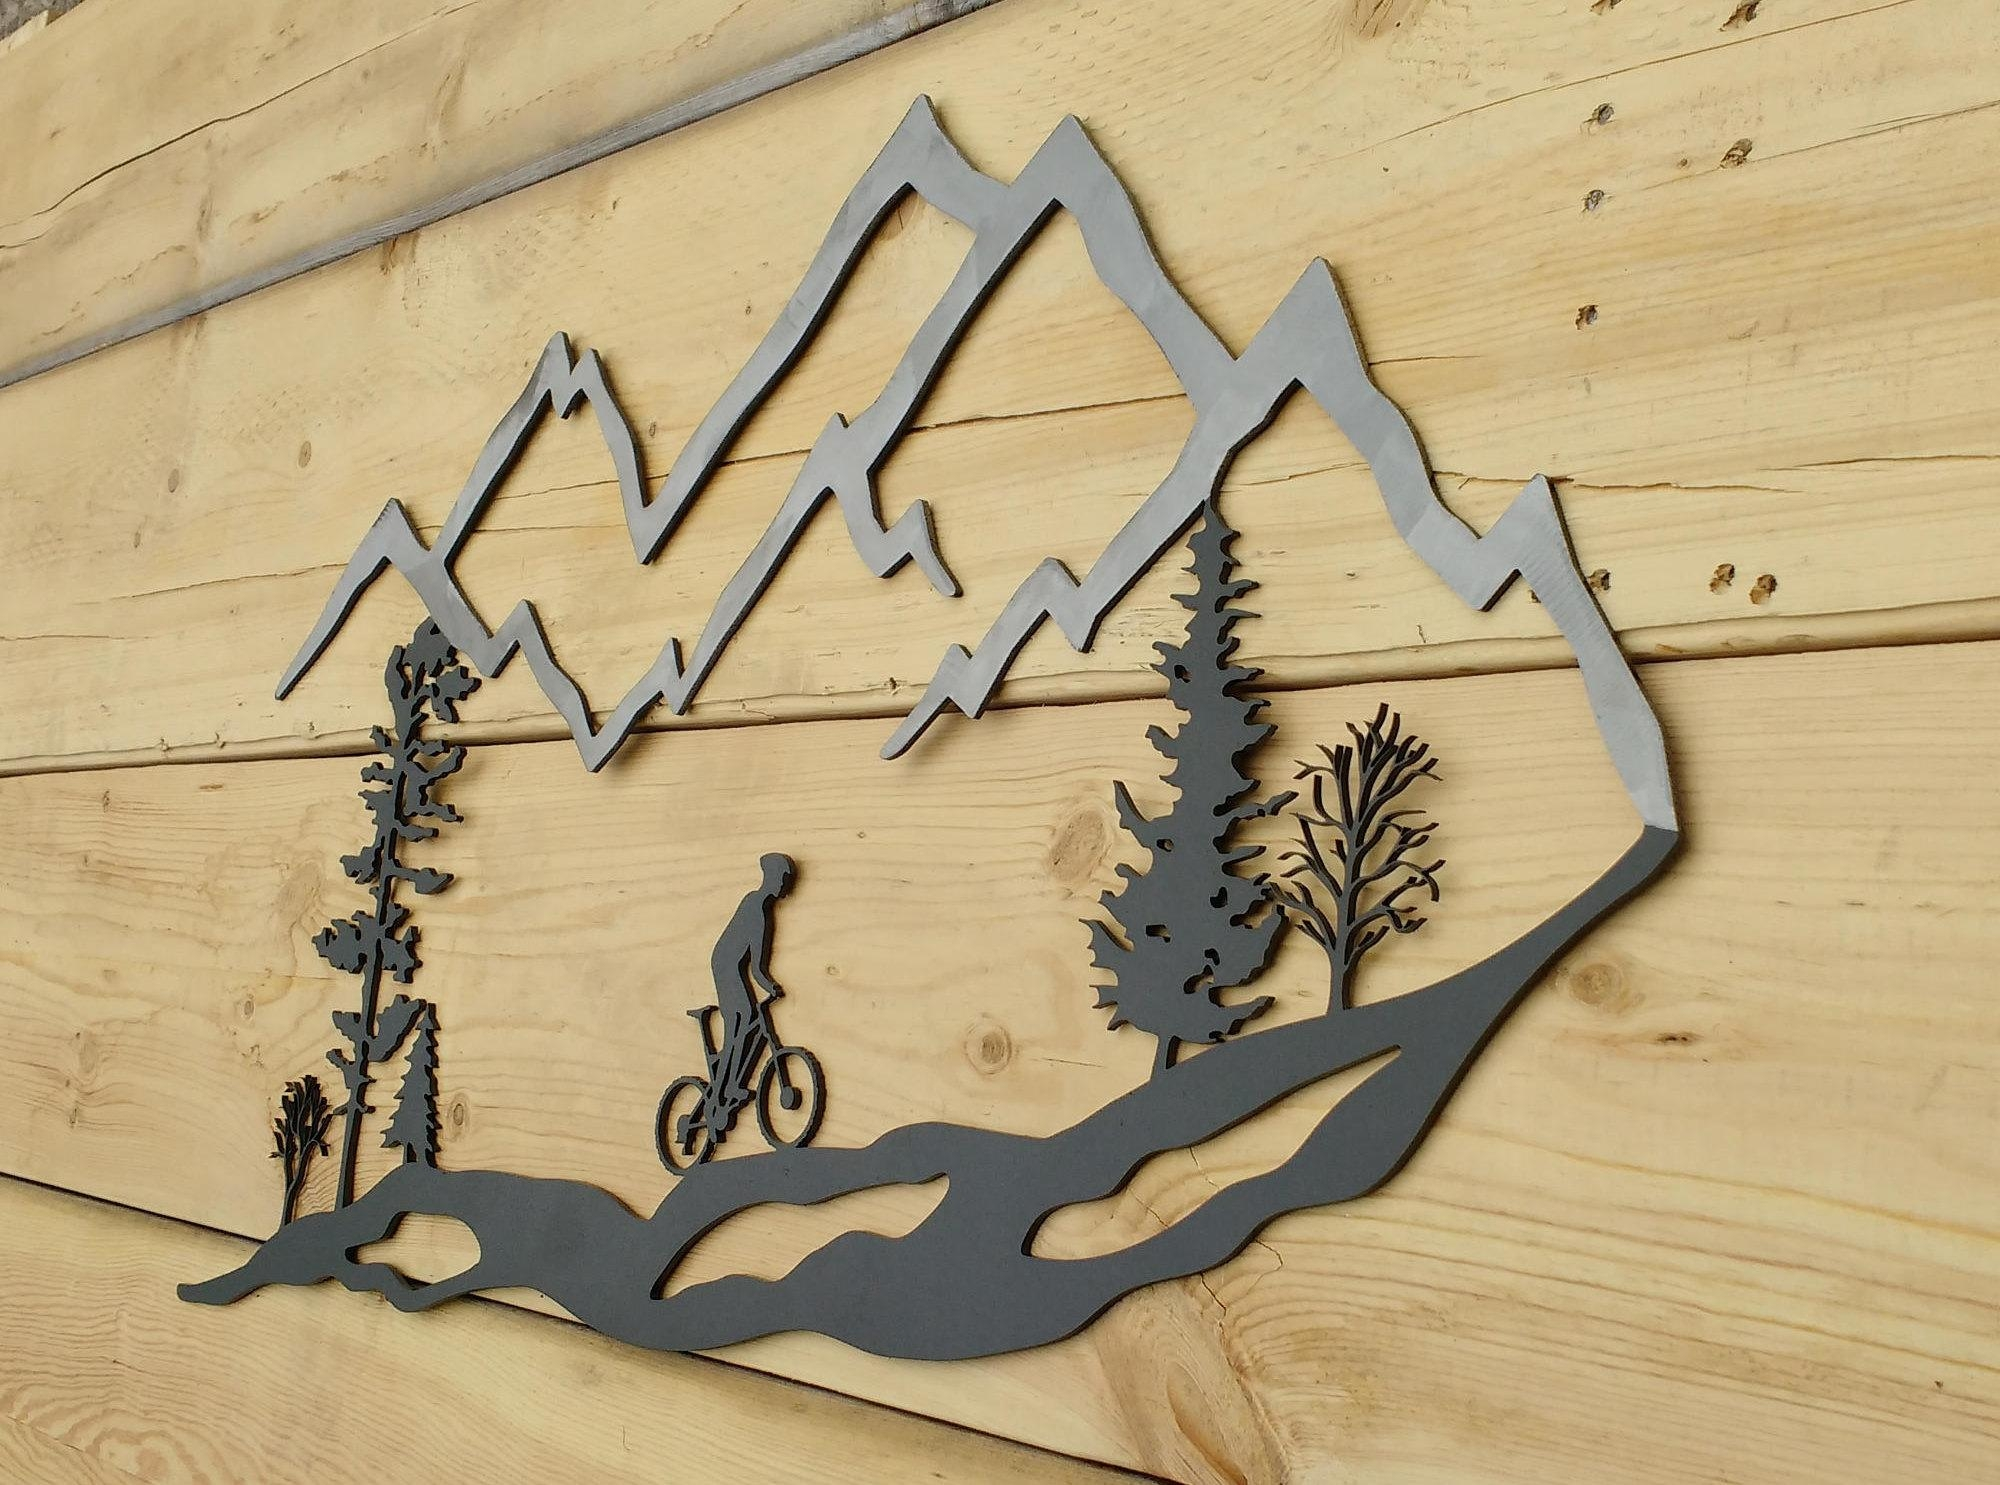 Metal Wall Art Mountain Bike Trees Mountain Bike Mtb Throughout Metal Bicycle Wall Art (View 20 of 20)